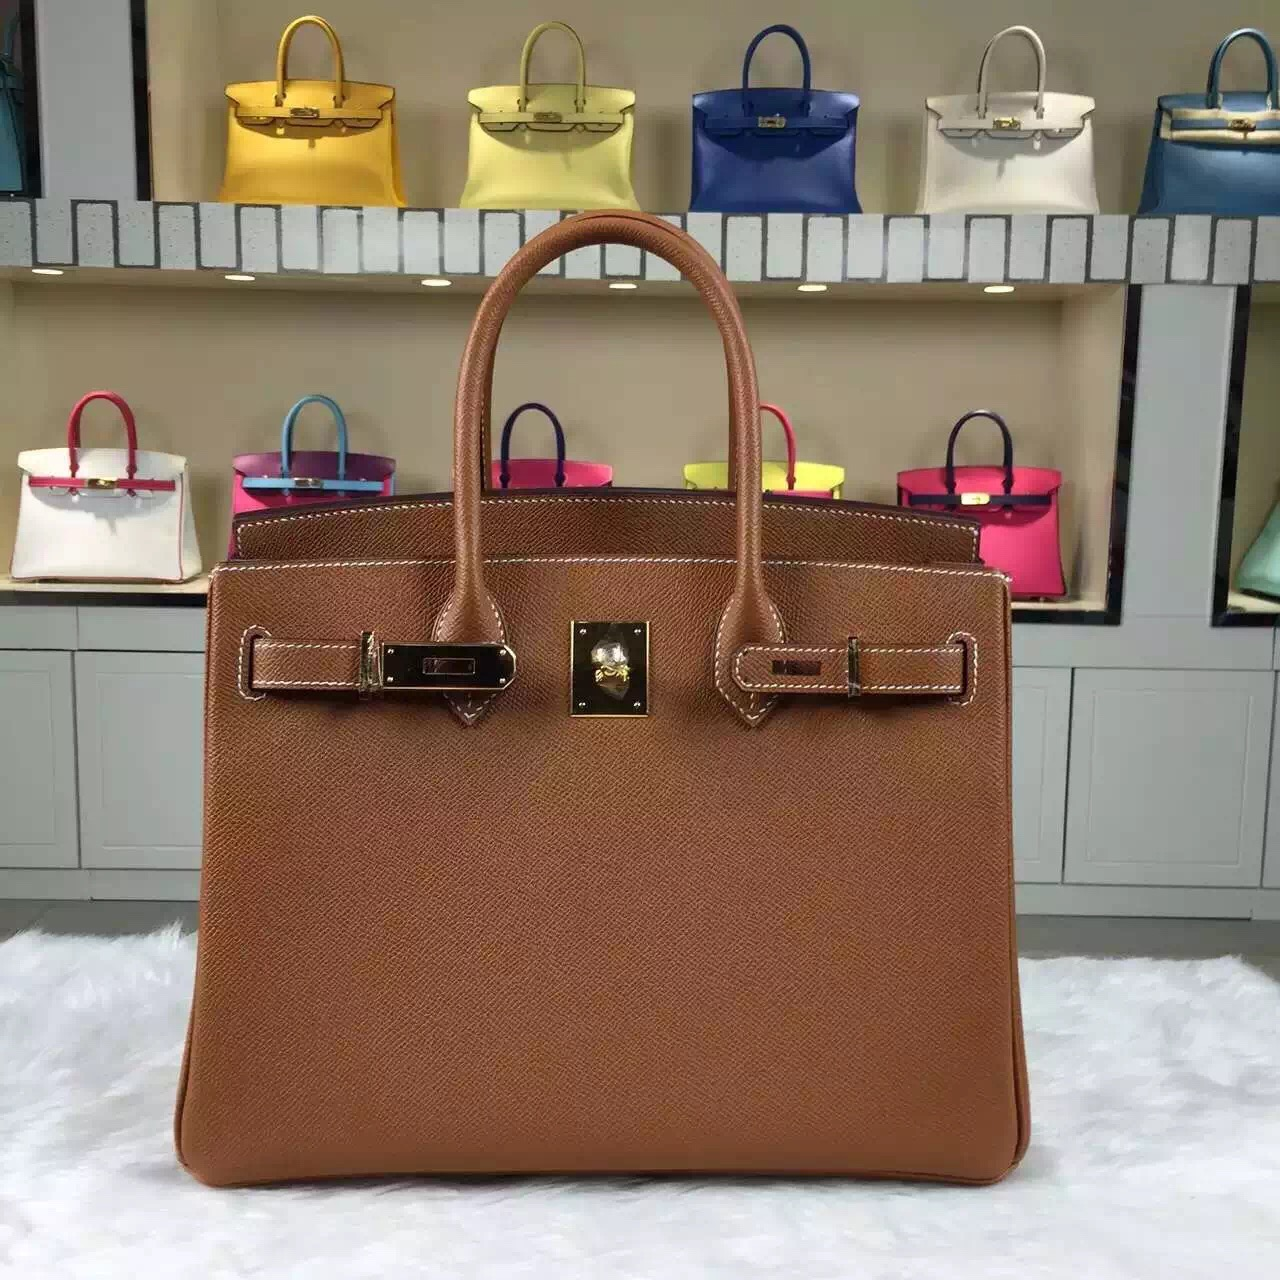 On Sale Hermes CK37 Gold Epsom Leather Birkin Bag30CM Gold Hardware